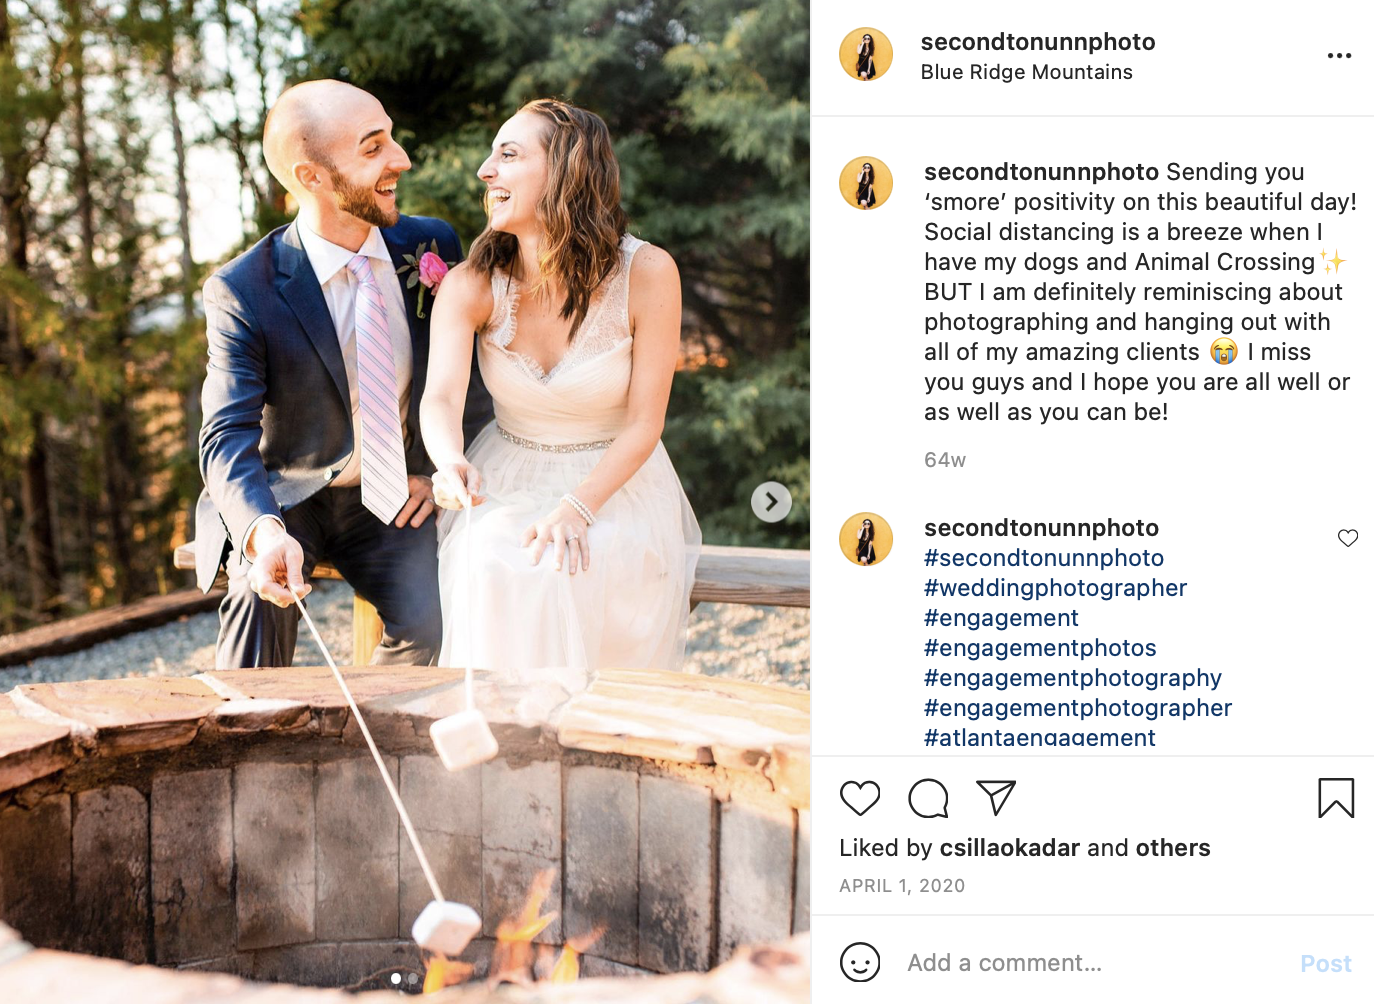 a bride and groom roast marshmallows over a fire